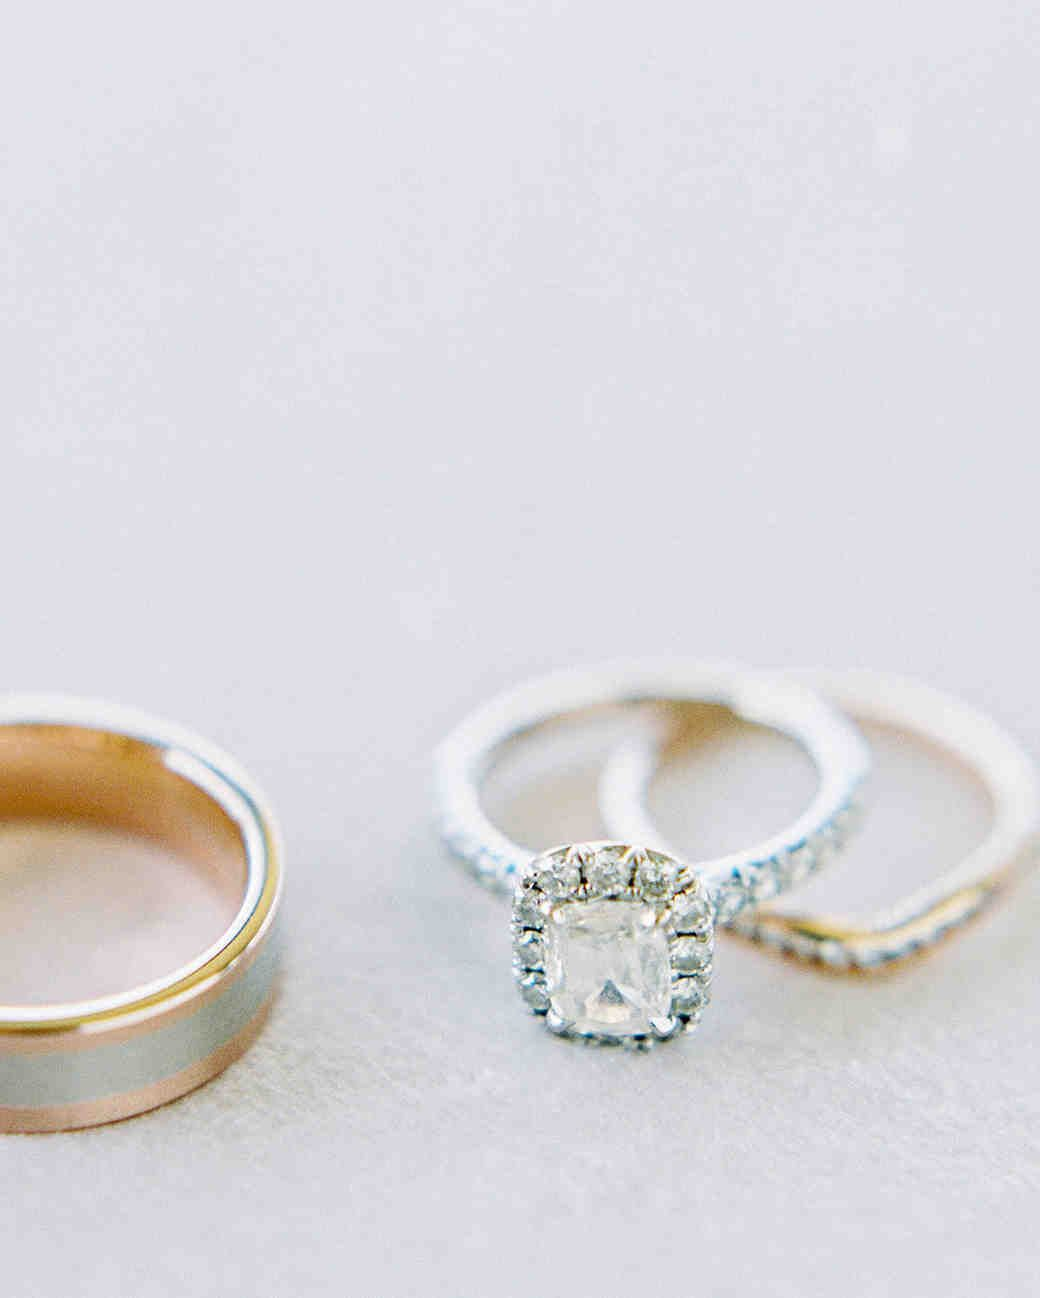 Engagement Rings Okc: A Romantic, Flower-Filled Wedding In Oklahoma